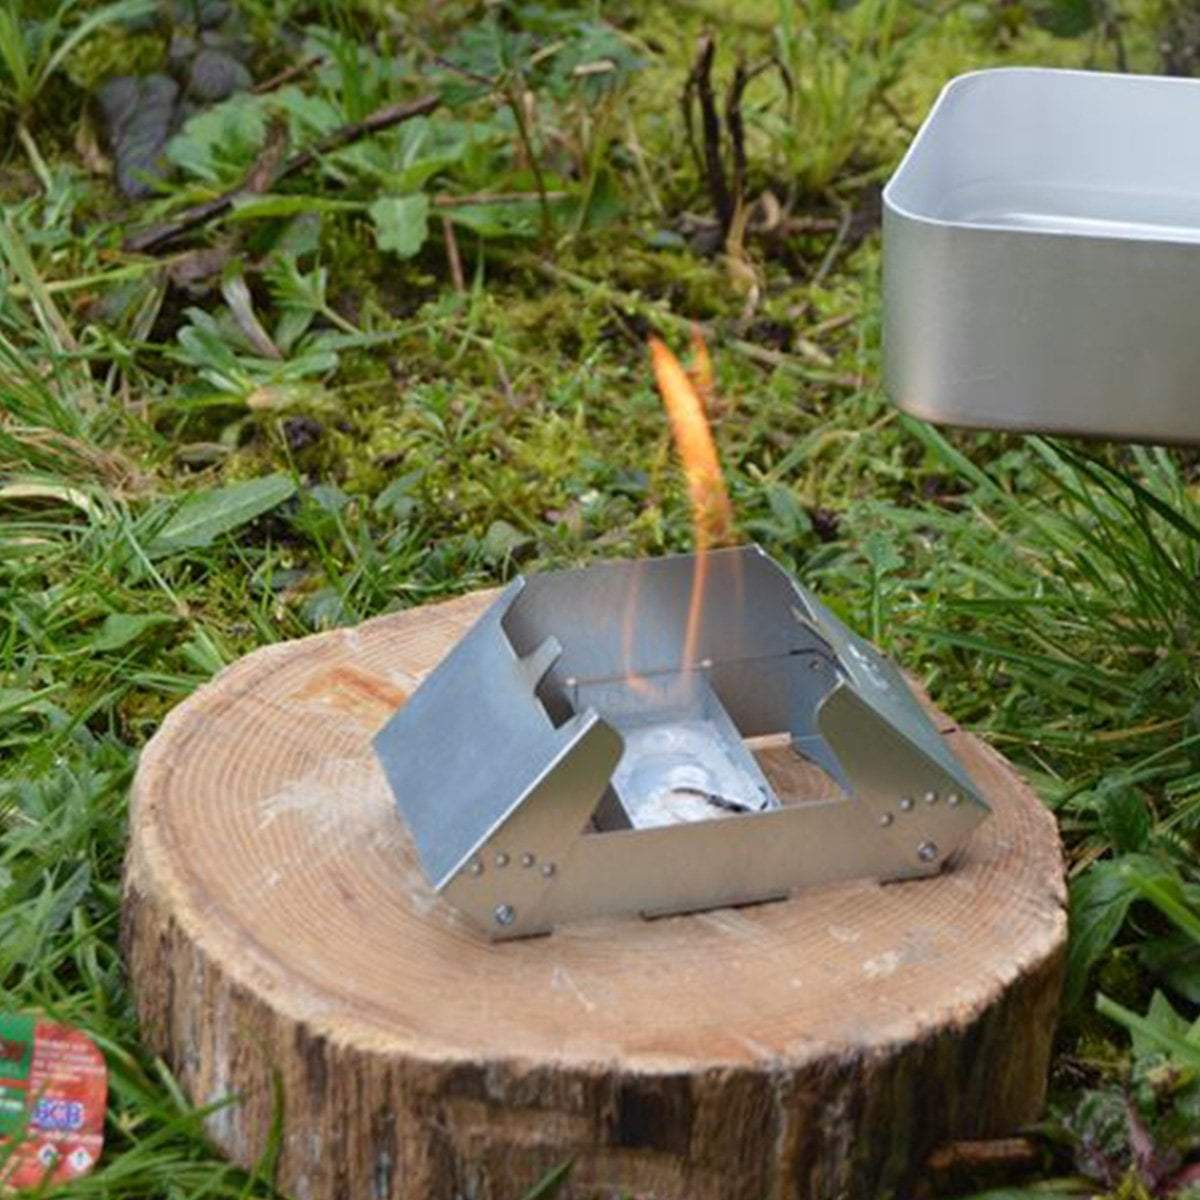 Fire Dragon Folding Cooker & Windbreaker | UKMC Pro